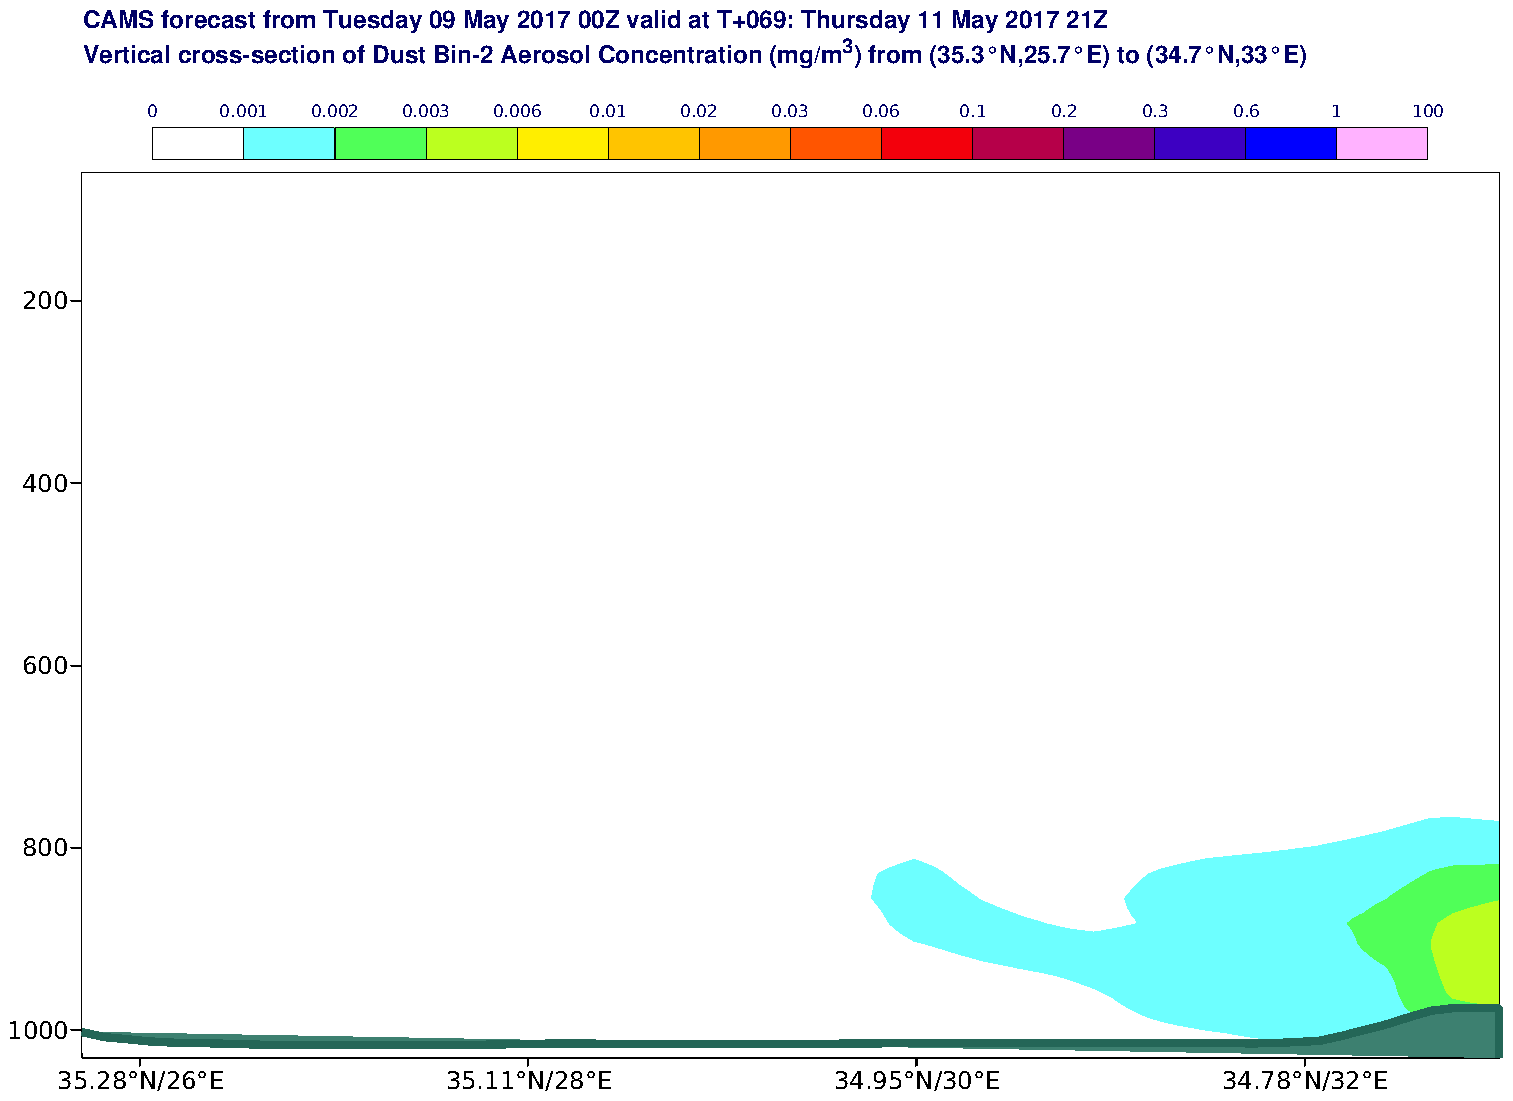 Vertical cross-section of Dust Bin-2 Aerosol Concentration (mg/m3) valid at T69 - 2017-05-11 21:00